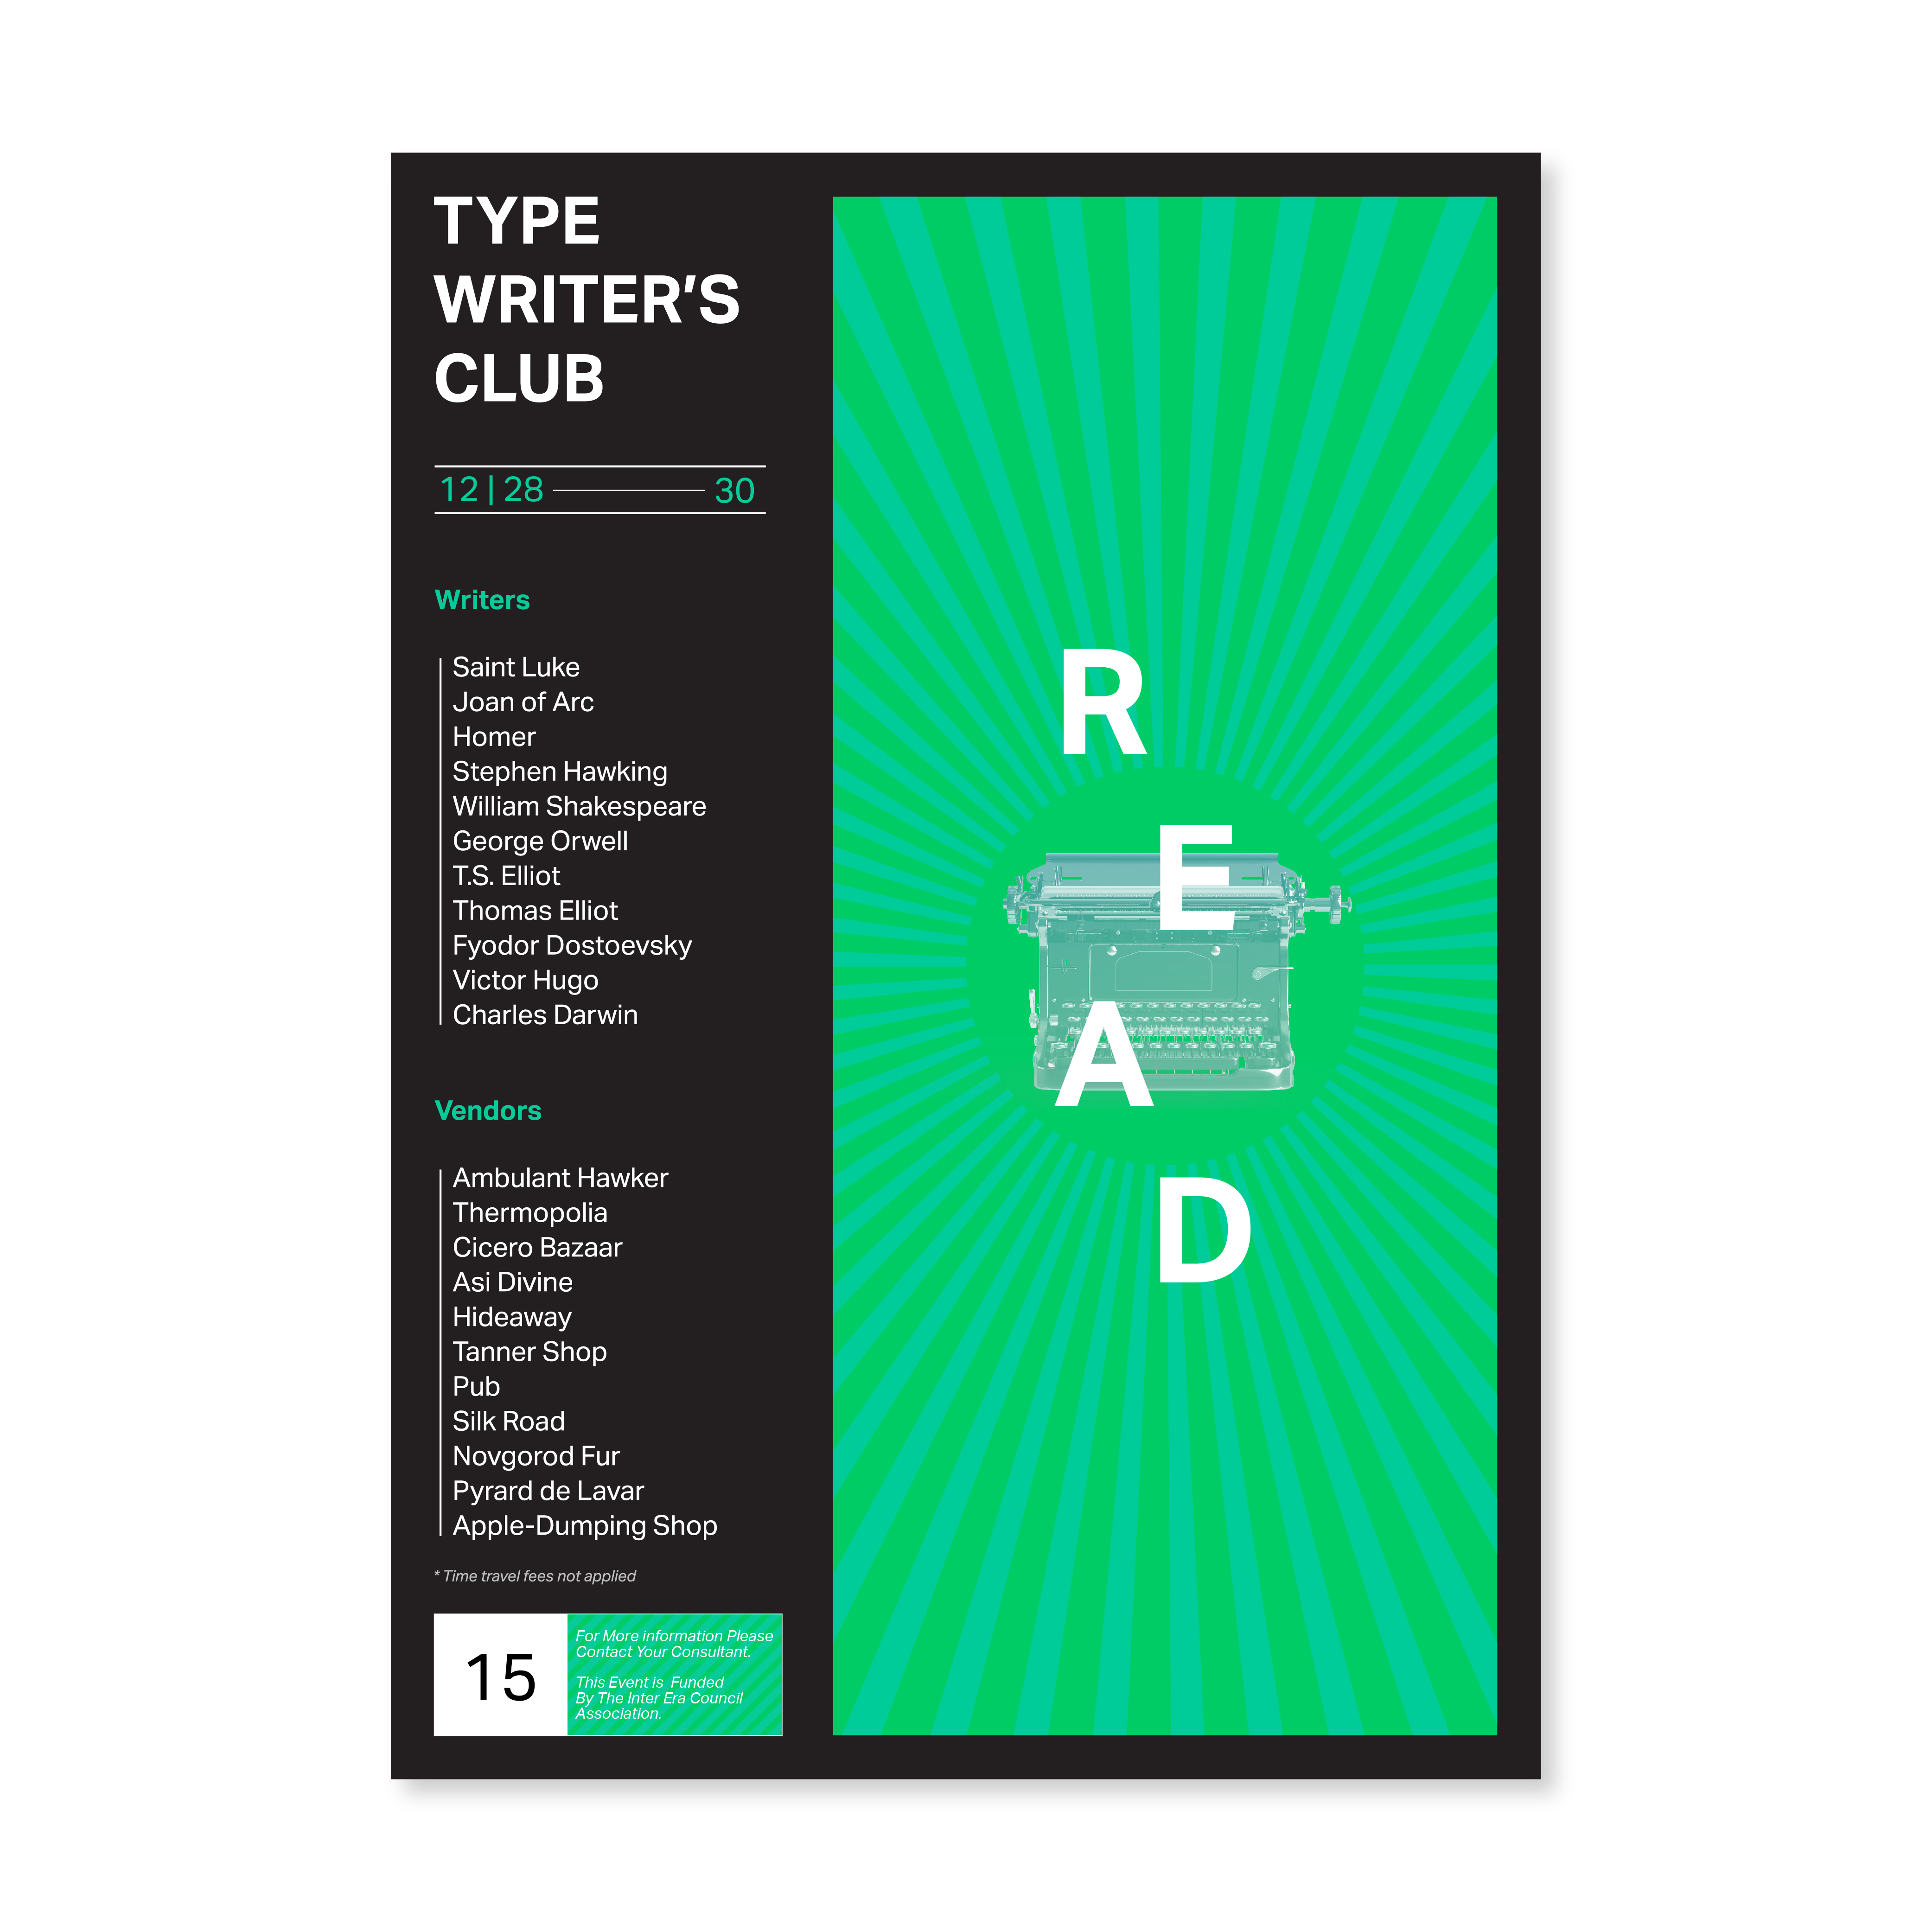 Type-Poster_17-01